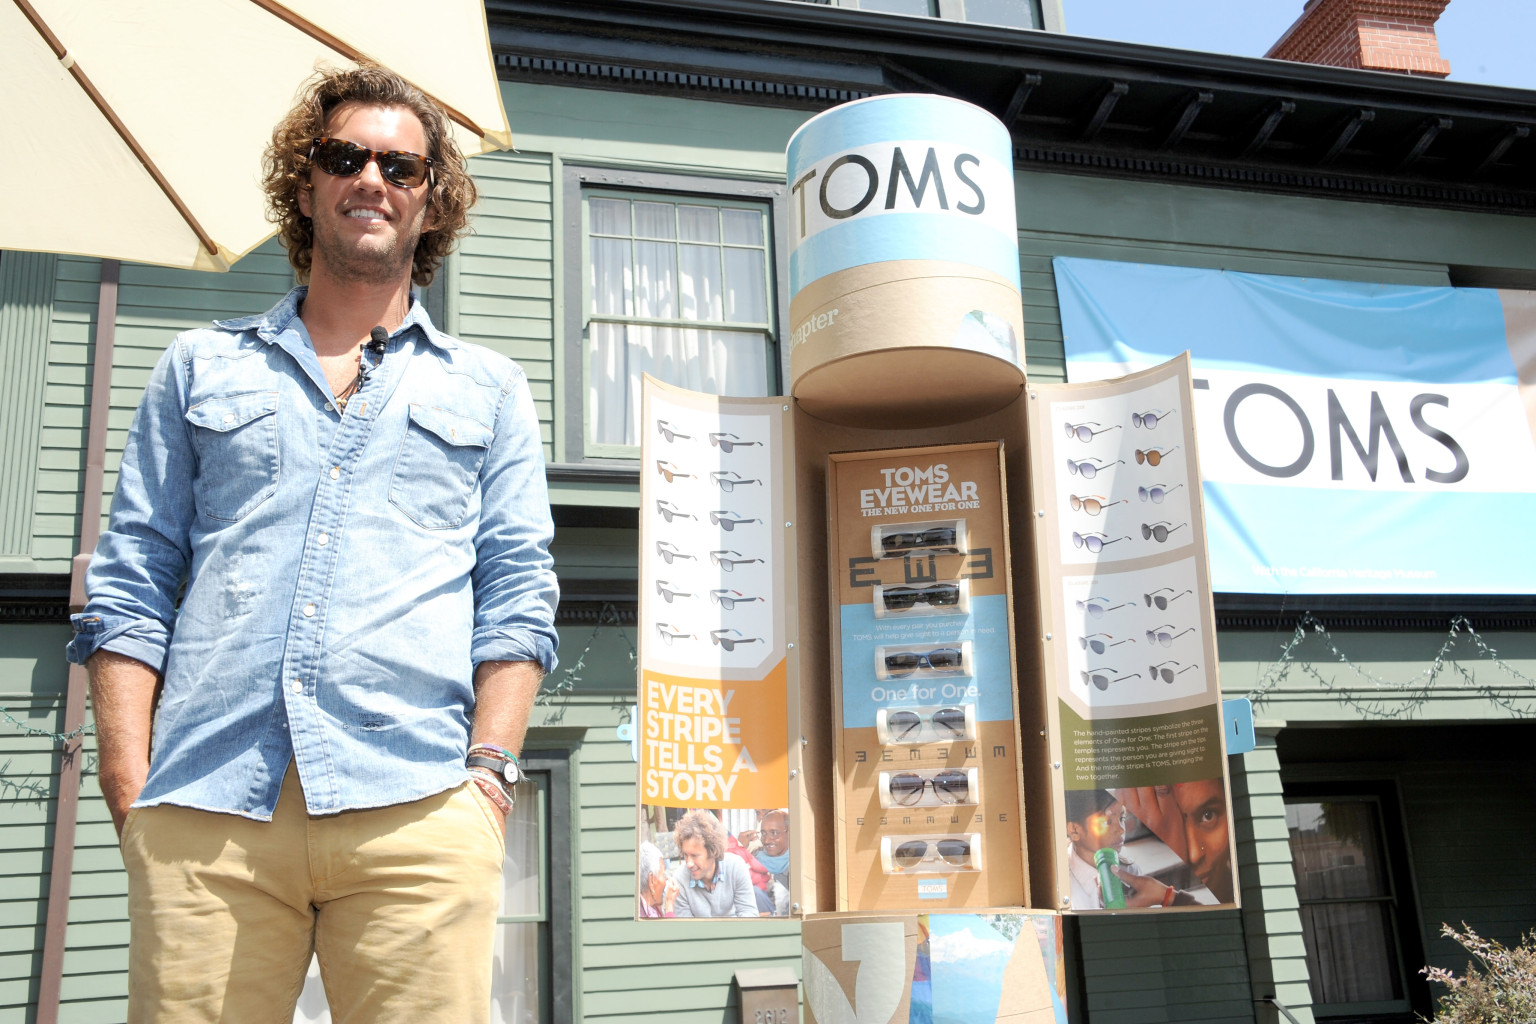 Toms Founder Blake Mycoskie Promises Big Investment Not Just Free Shoes Huffpost